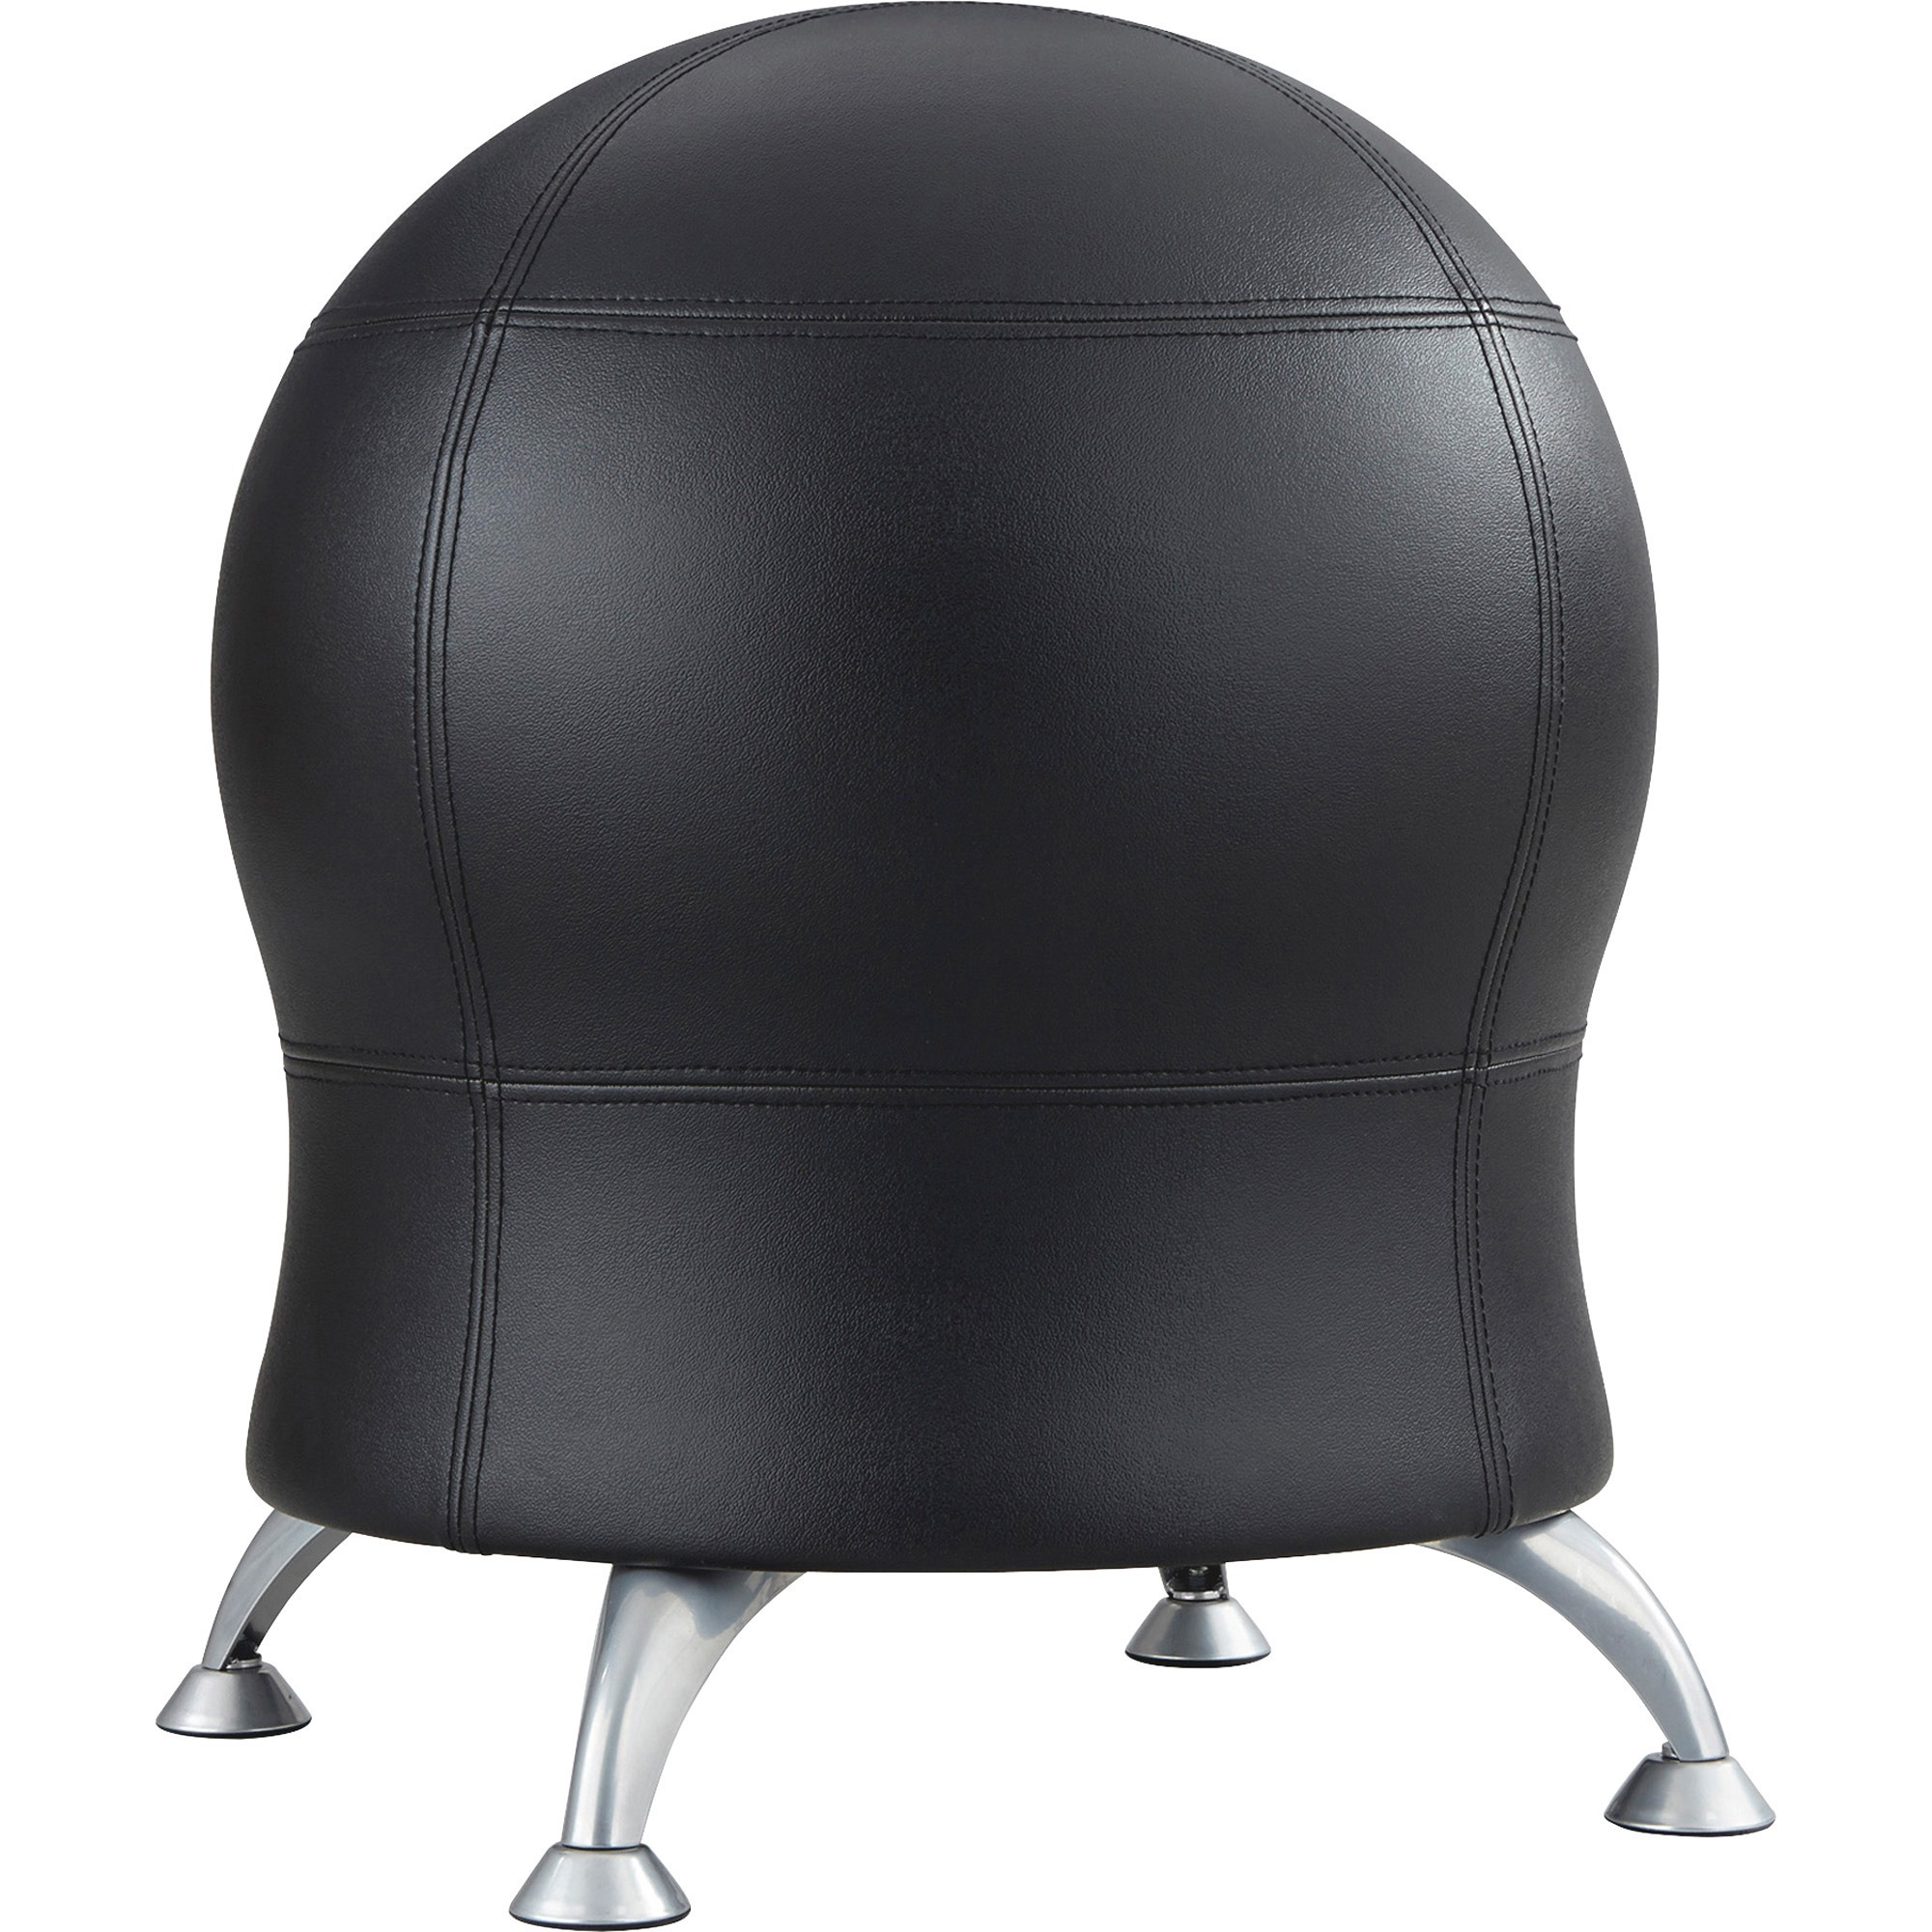 Balance Ball Chair Frame Only: Safco Zenergy Ball Chair